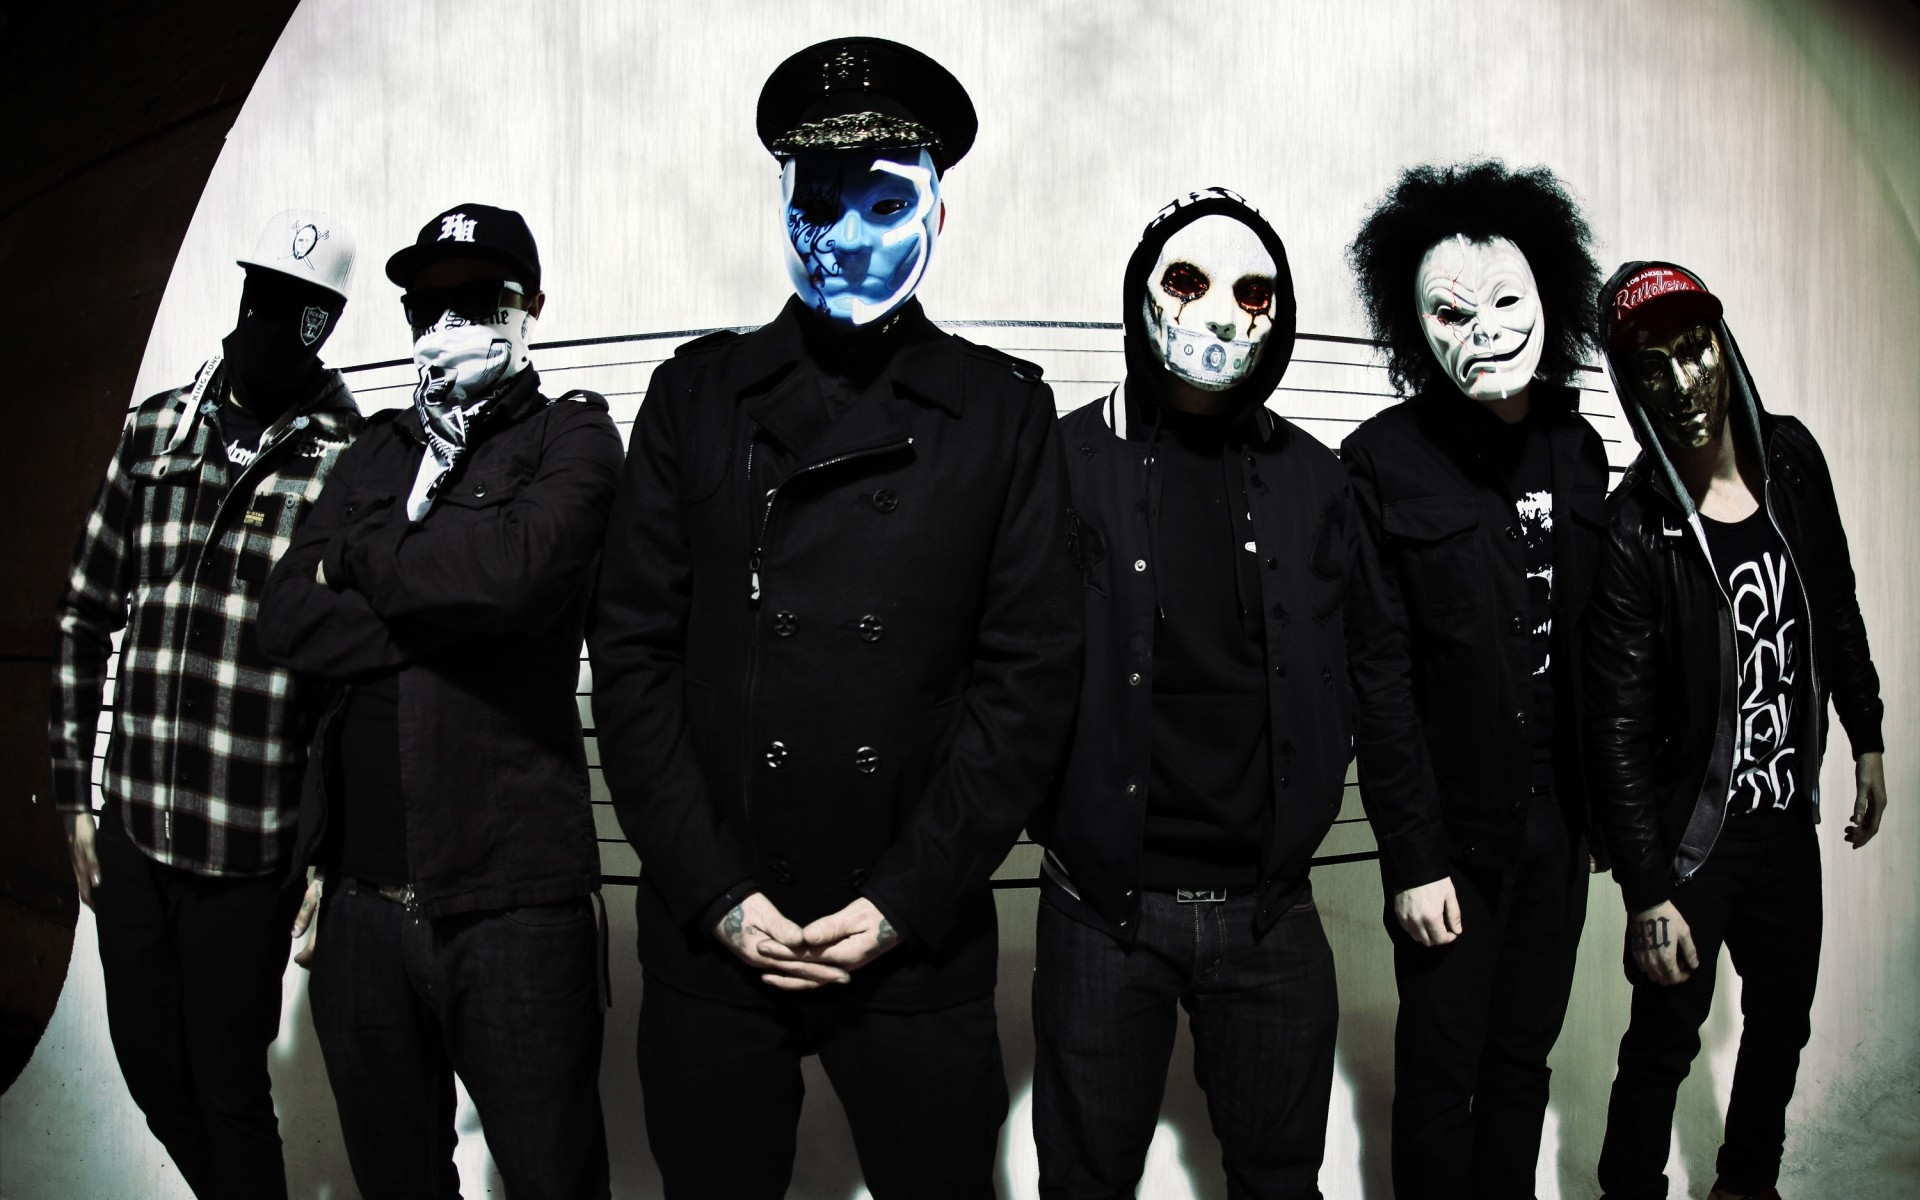 danny, j-dog, hollywood undead